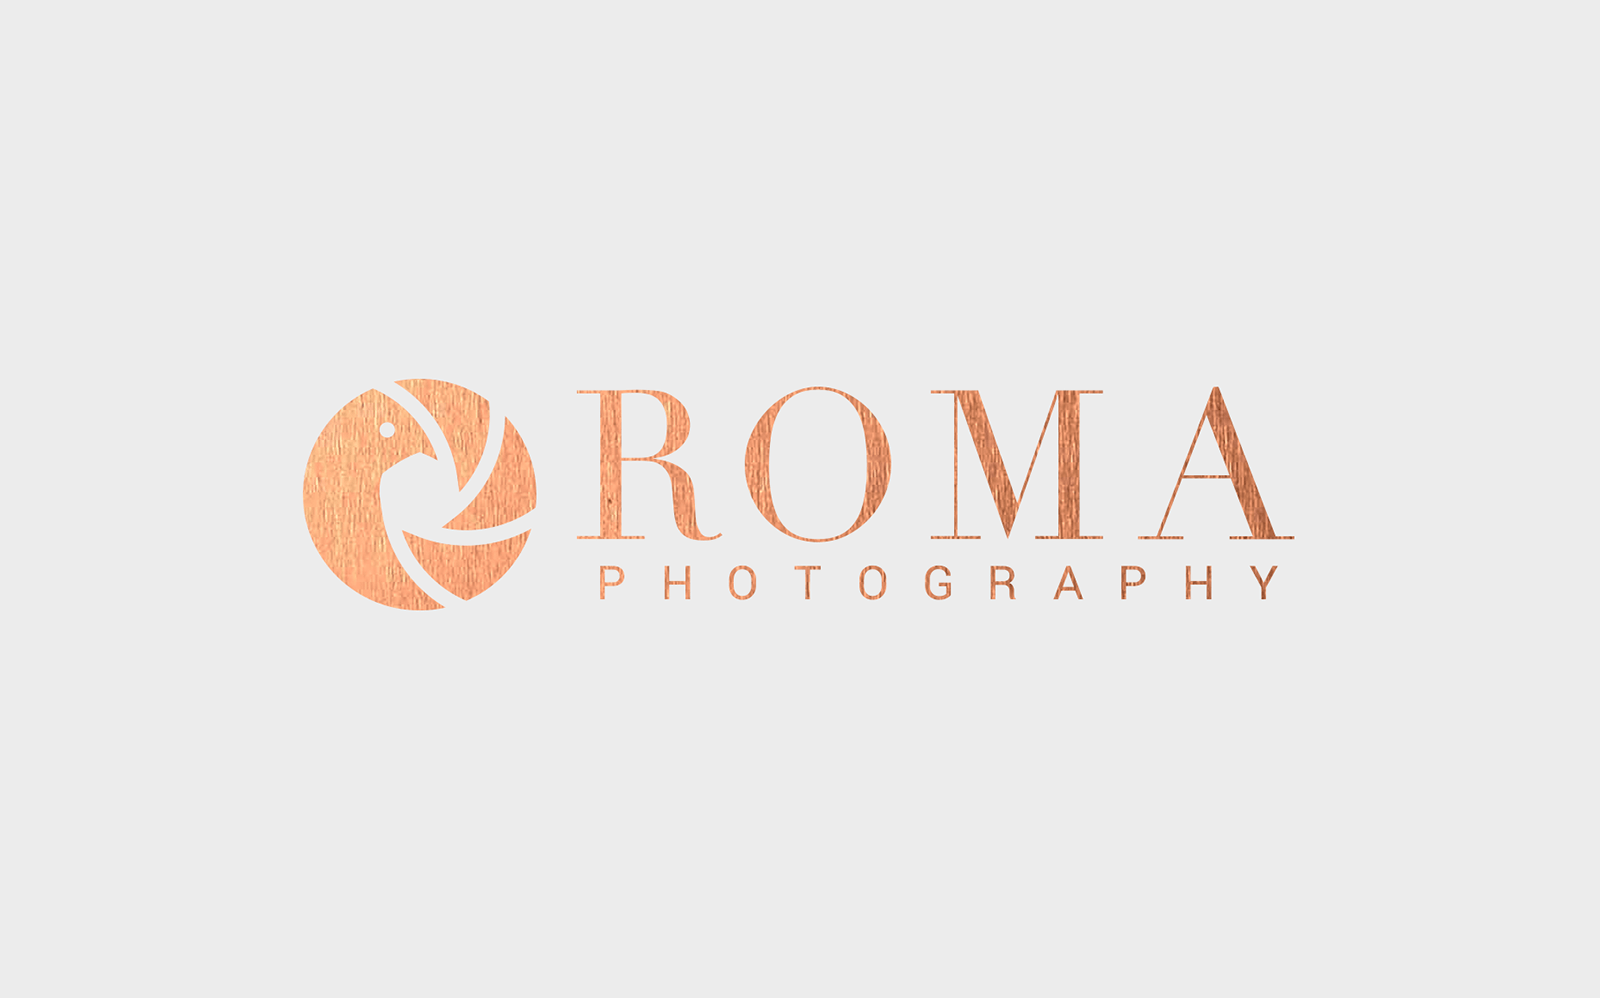 roma photography small business logo design